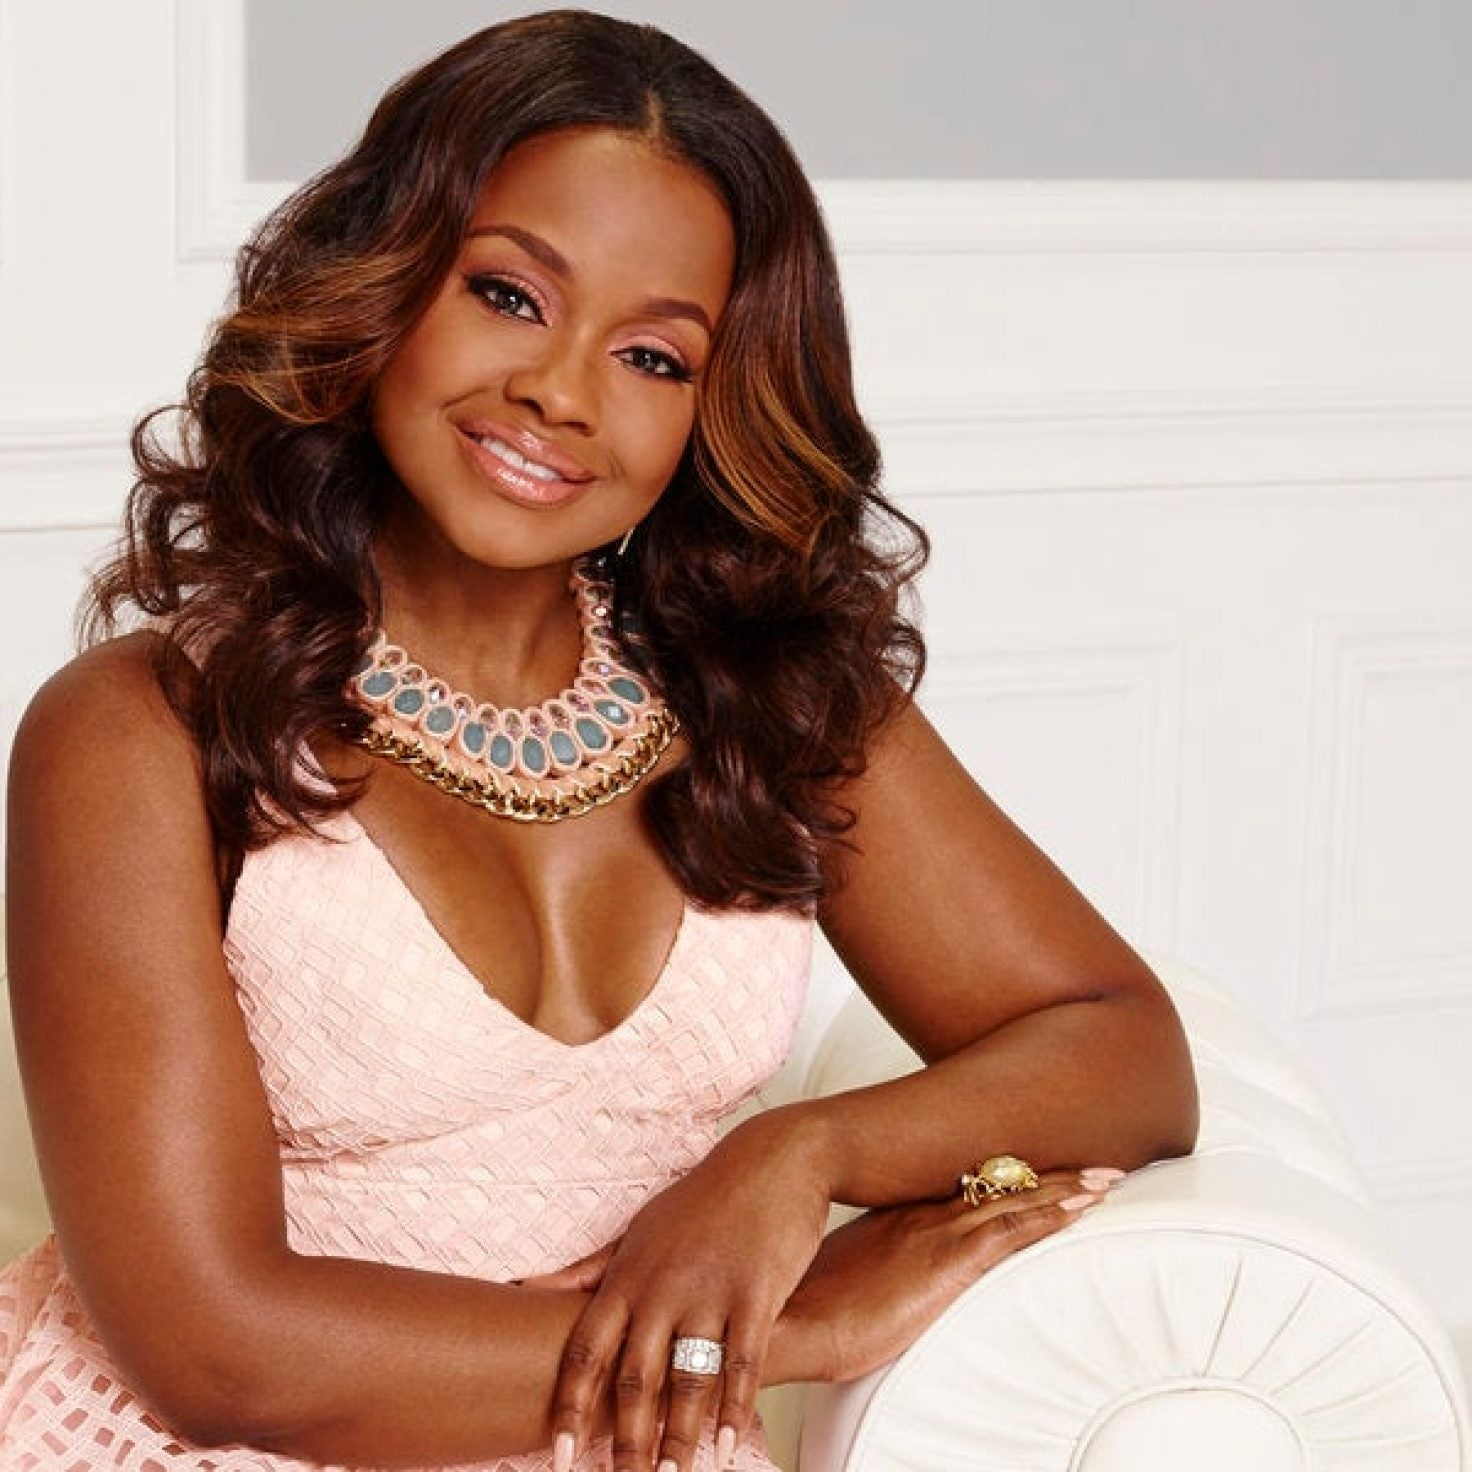 phaedra-parks-blasts-donald-trumps-message-from-the-past-summer